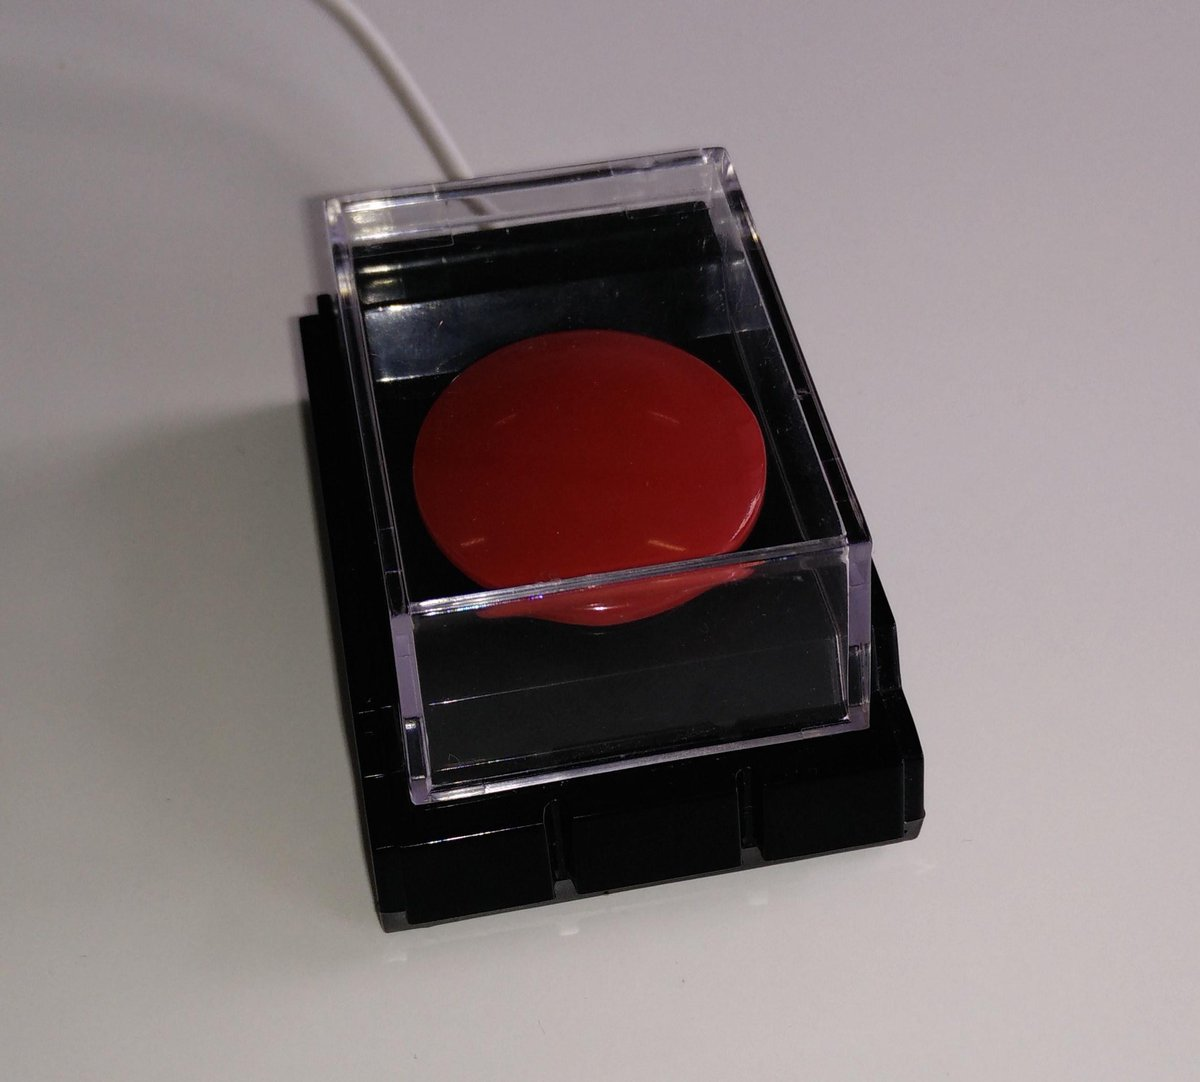 """""""this is going to hurt you more than it hurts me"""" - the button we used to shutdown the Firehose Today http://t.co/1AsUO0TzXL"""